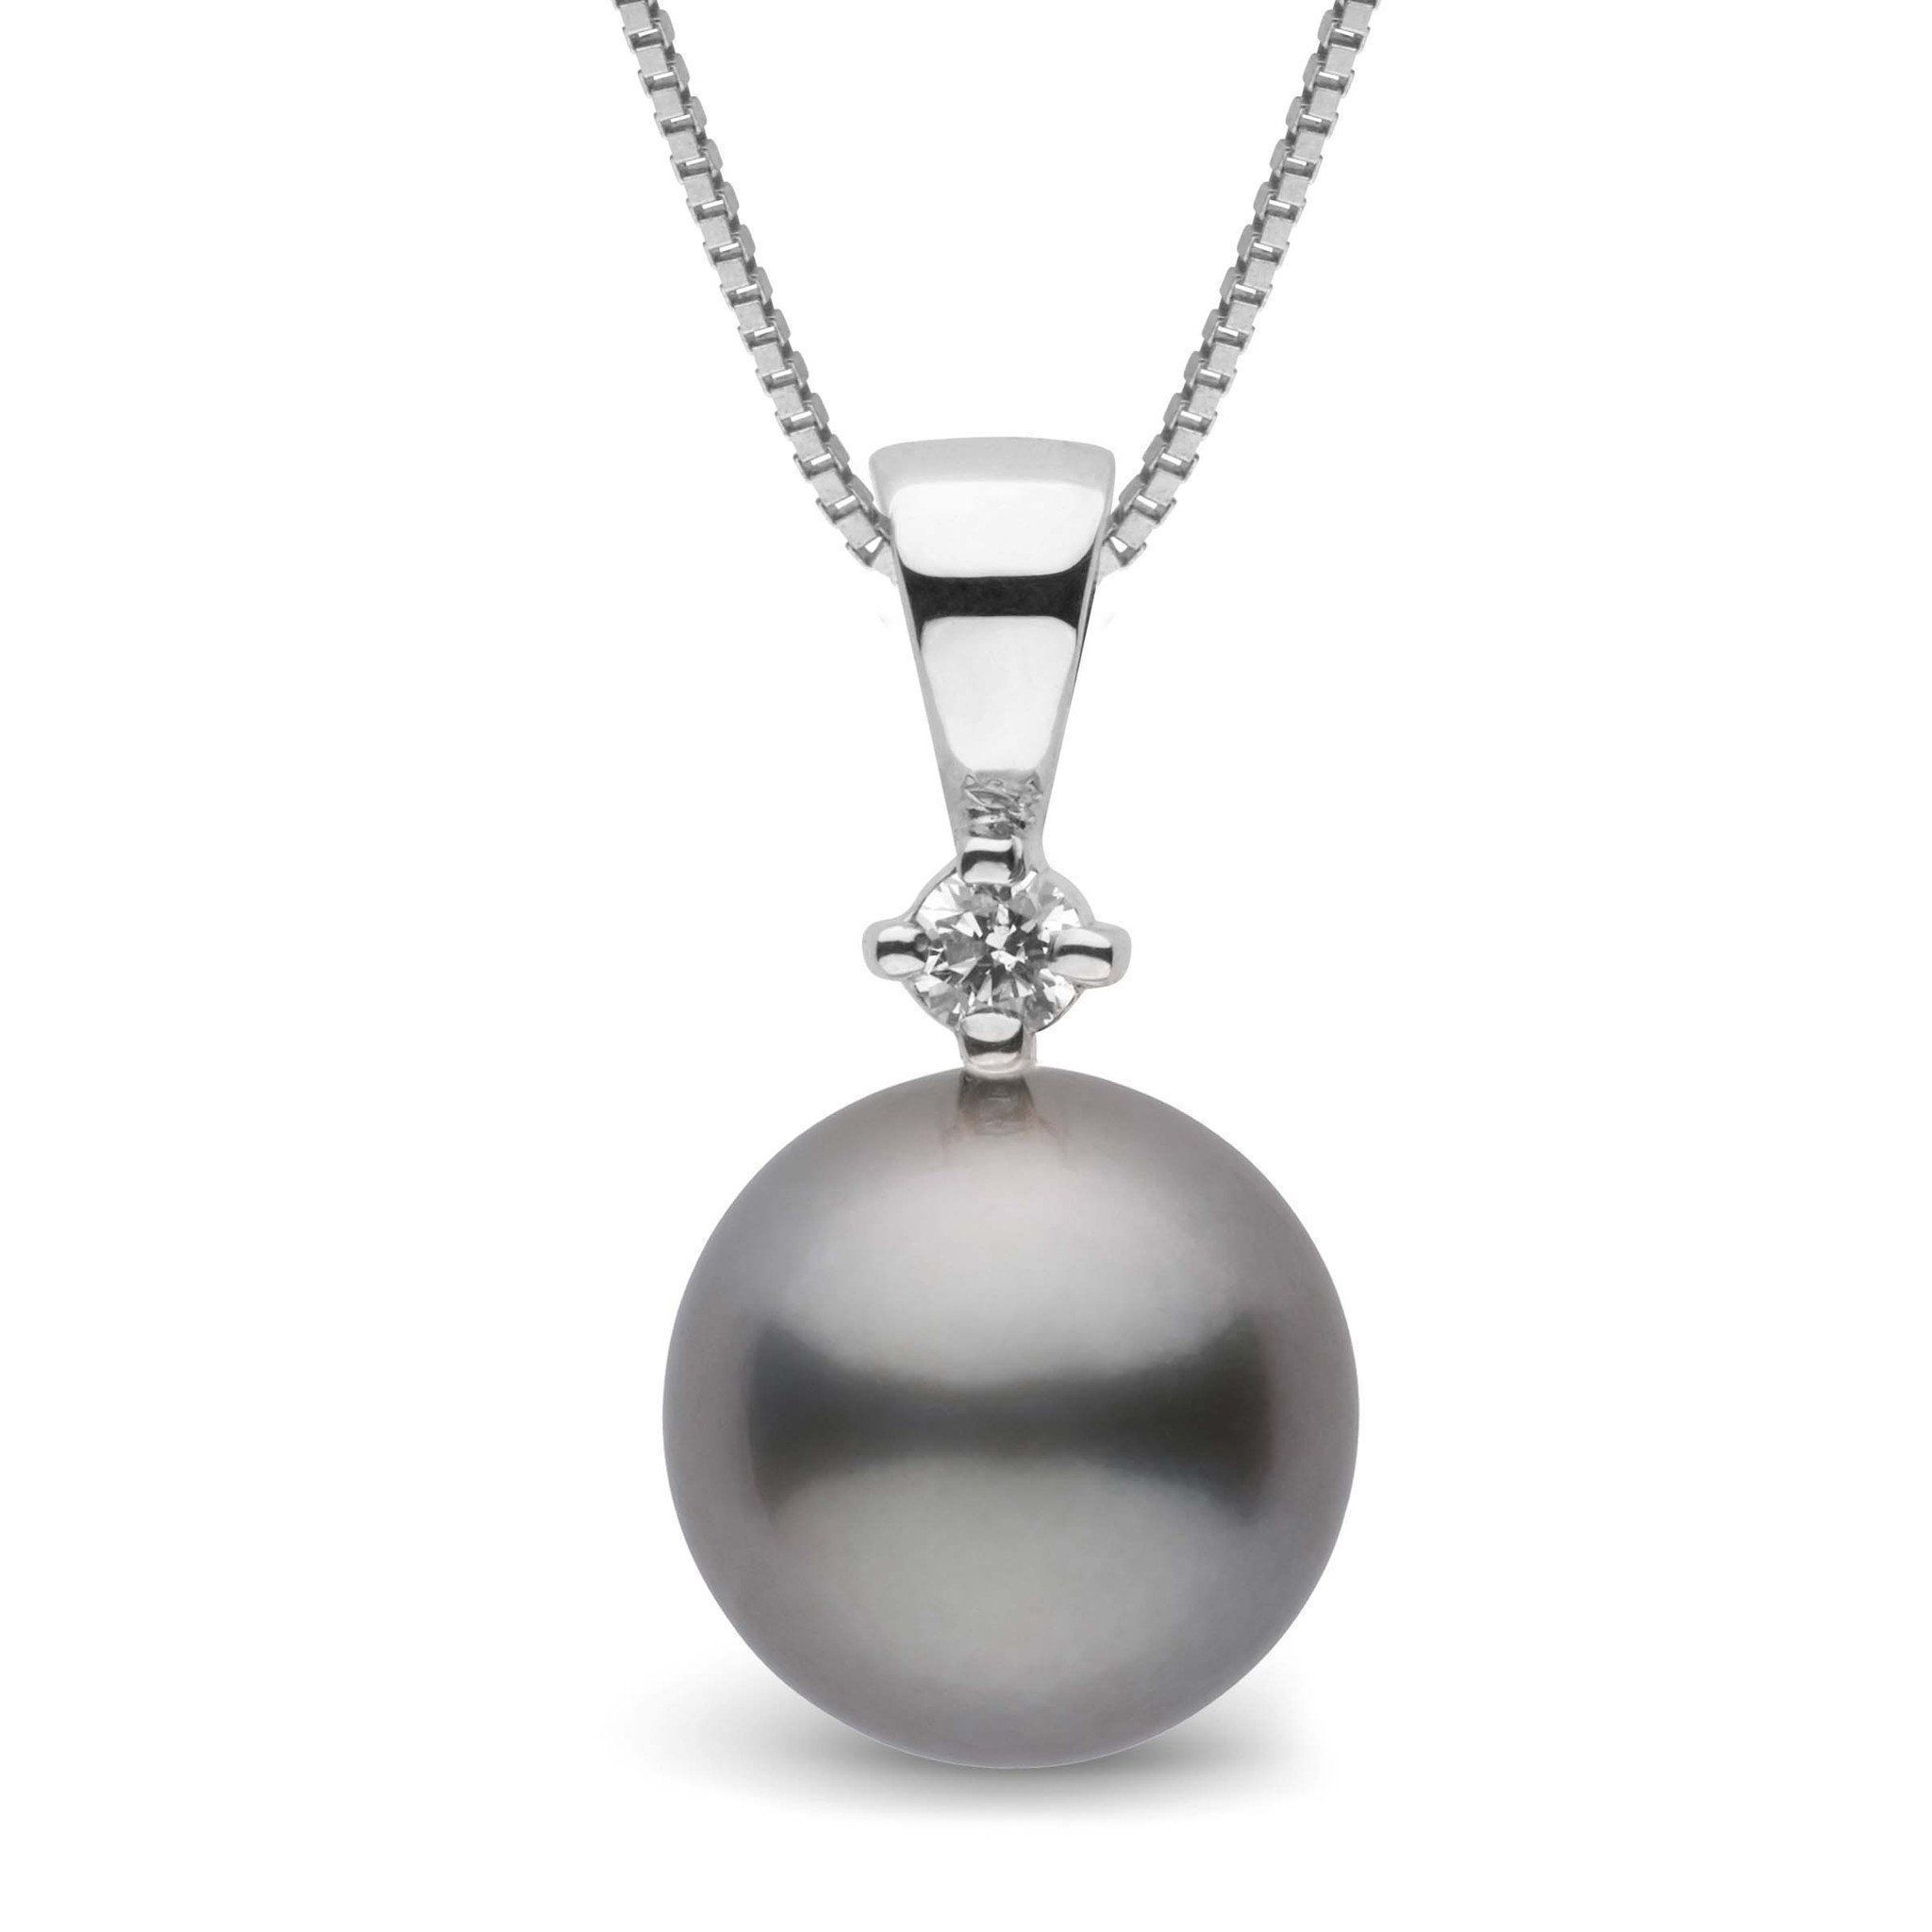 Nobility Collection 10.0-11.0 mm Tahitian Pearl and Diamond Pendant